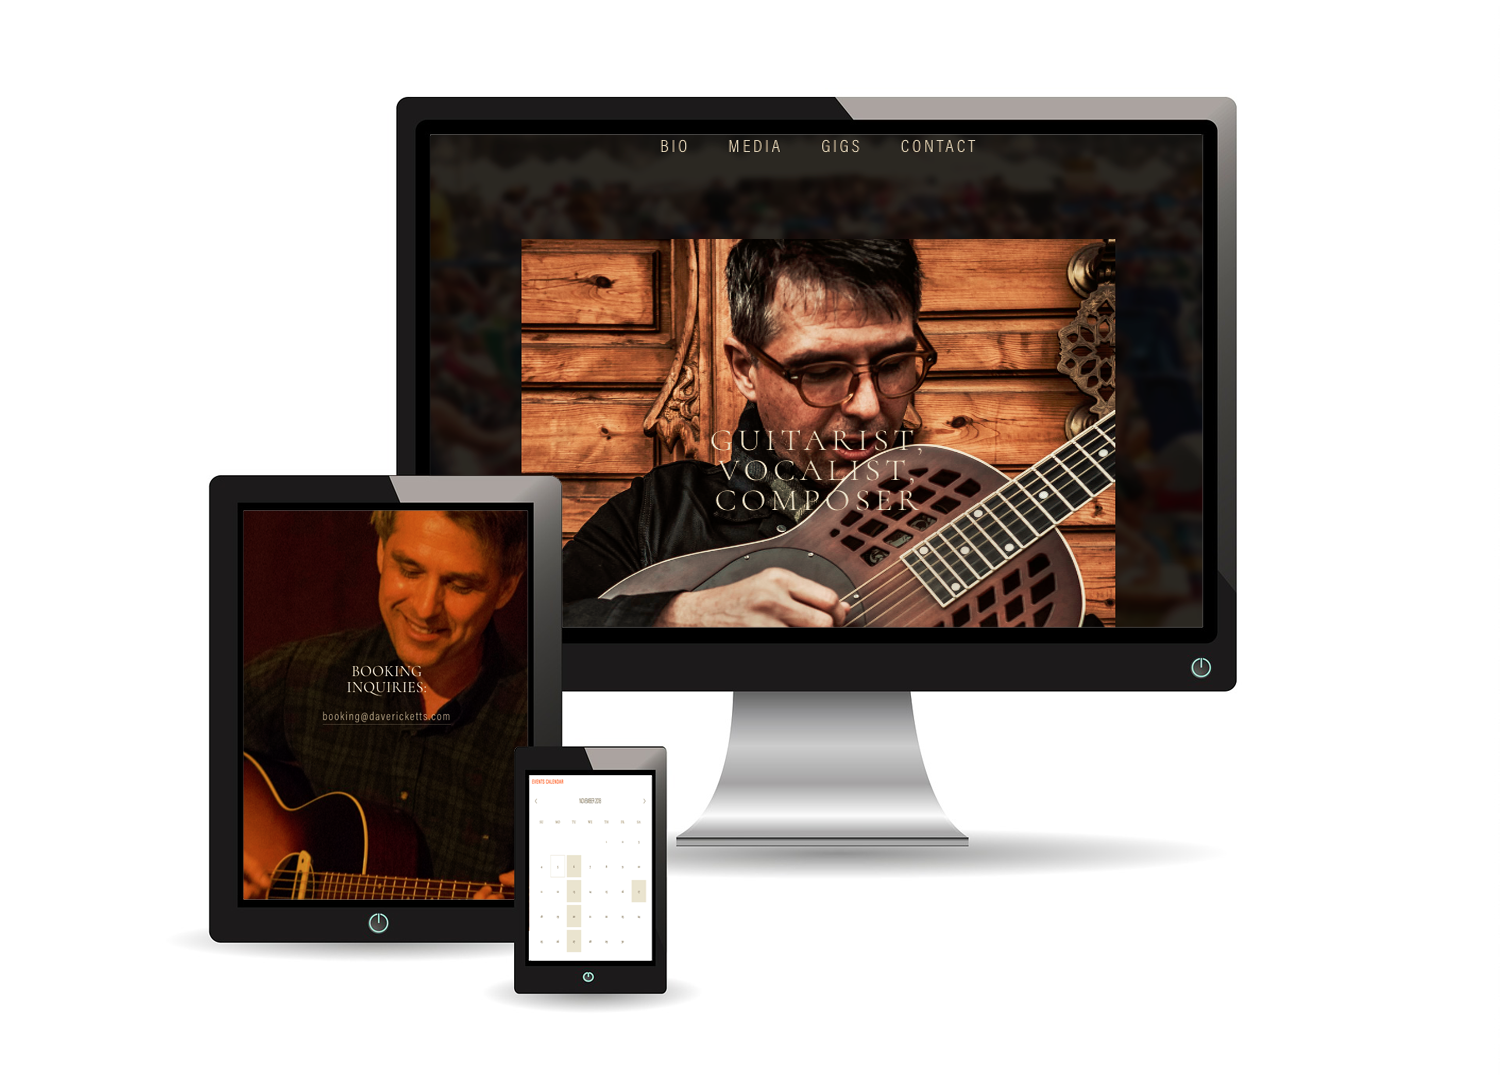 DAVE RICKETTS | Website Design for Musician - San Francisco based musician, Dave Ricketts, wanted to establish his web presence. He needed a website to promote his music and his guitar lessons. Branded social media profiles were developed on Facebook, Instagram, YouTube, and Twitter, then connected to the site. On the Squarespace platform, we provided a photo-rich design, wrote copy, added videos, and optimized pages for search. In addition, MailChimp was integrated to capture email subscribers, sound tracks were embedded, and a Bands in Town calendar was integrated.